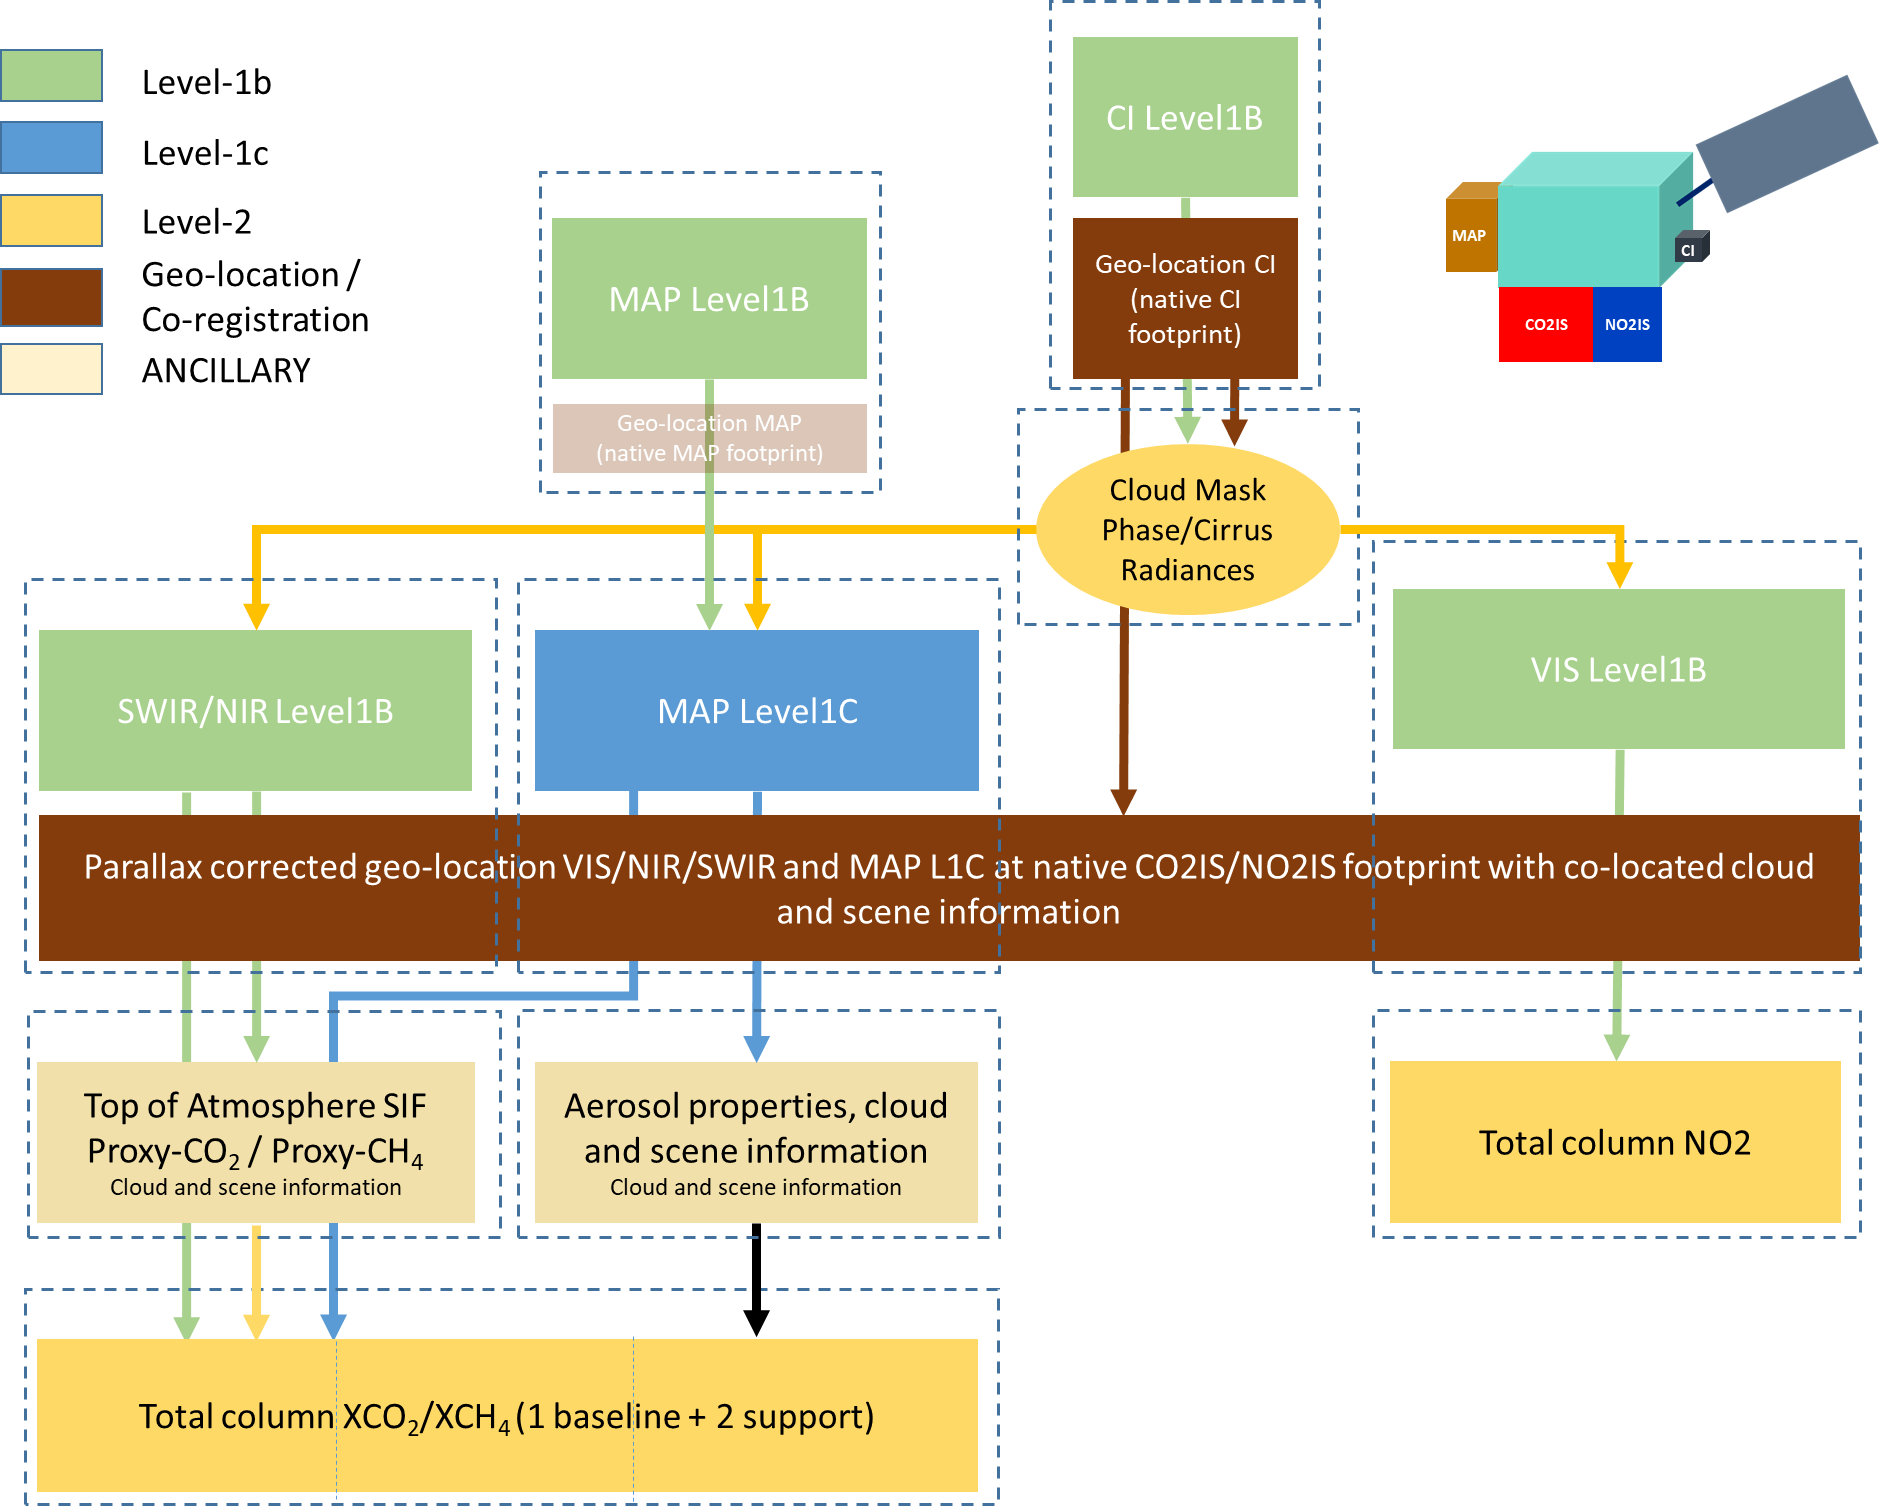 Schematic of the proposed CO2M ground-segment processing tasks for processing level-1 and 2 products, together with geo-location and scene information, as well as ancillary input and output data.